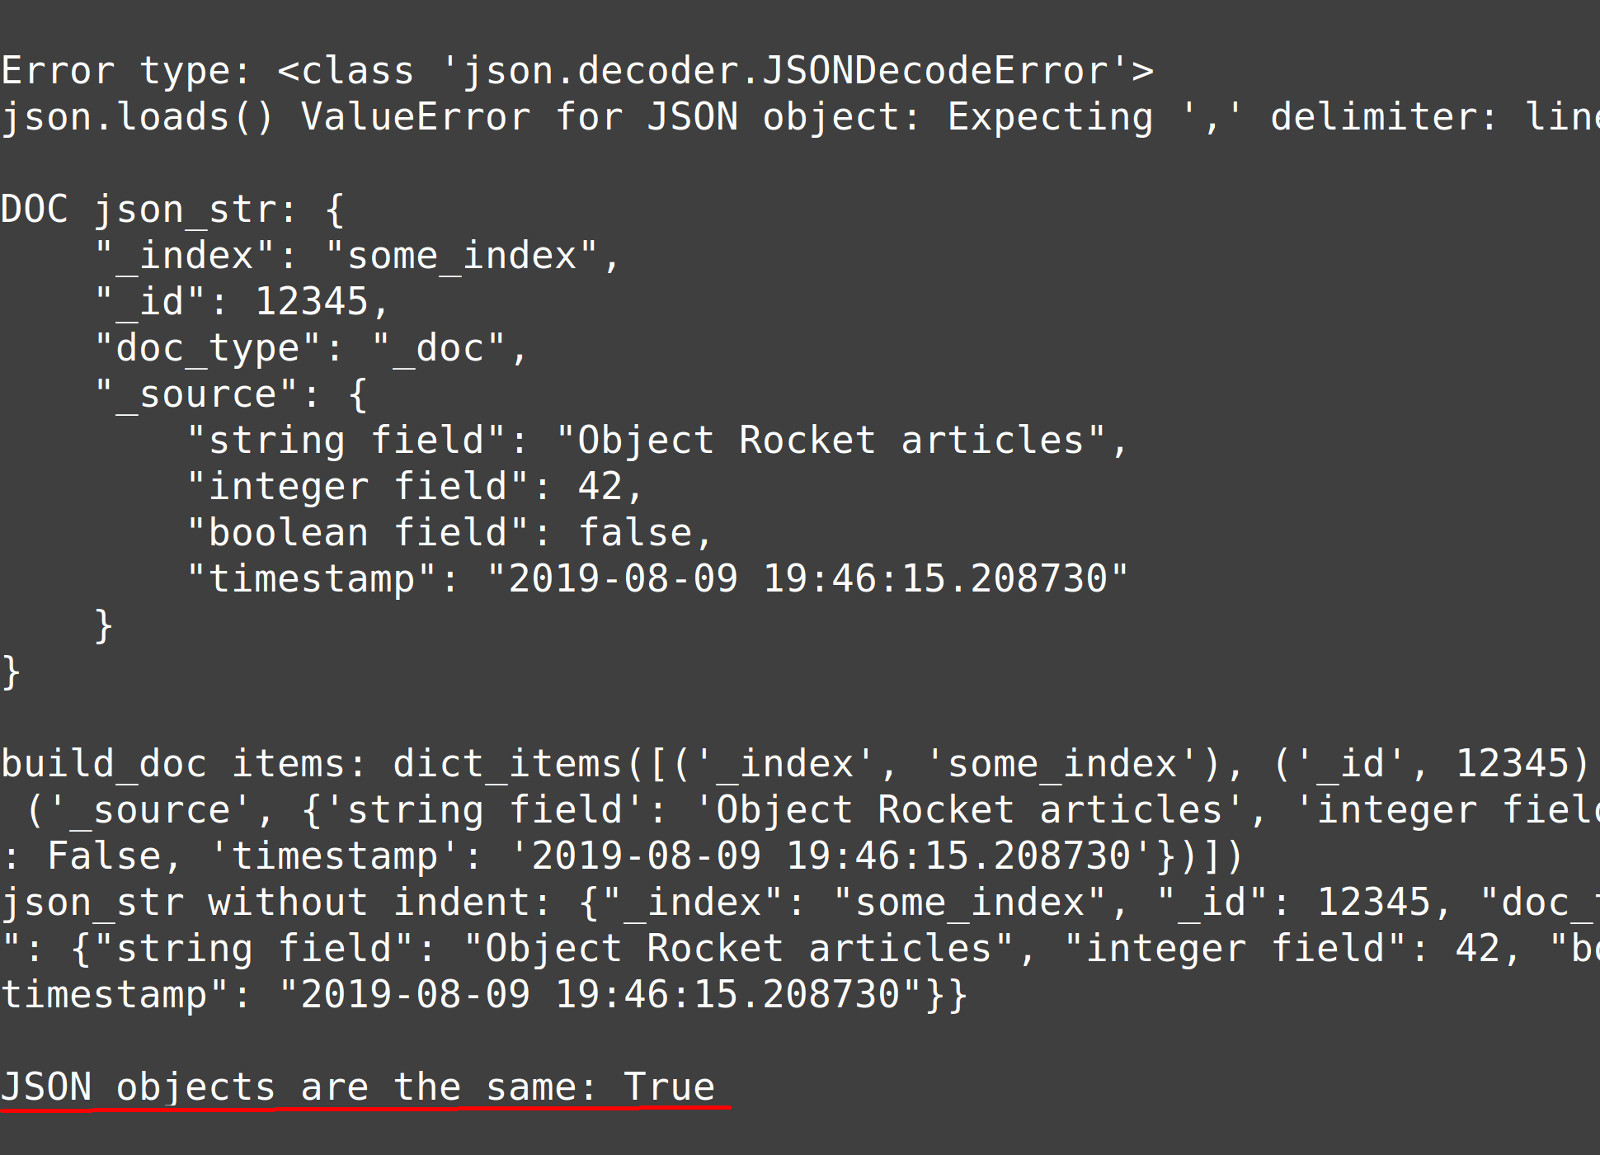 Screenshot comparing two JSON dict objects representing Elasticsearch documents created in Python